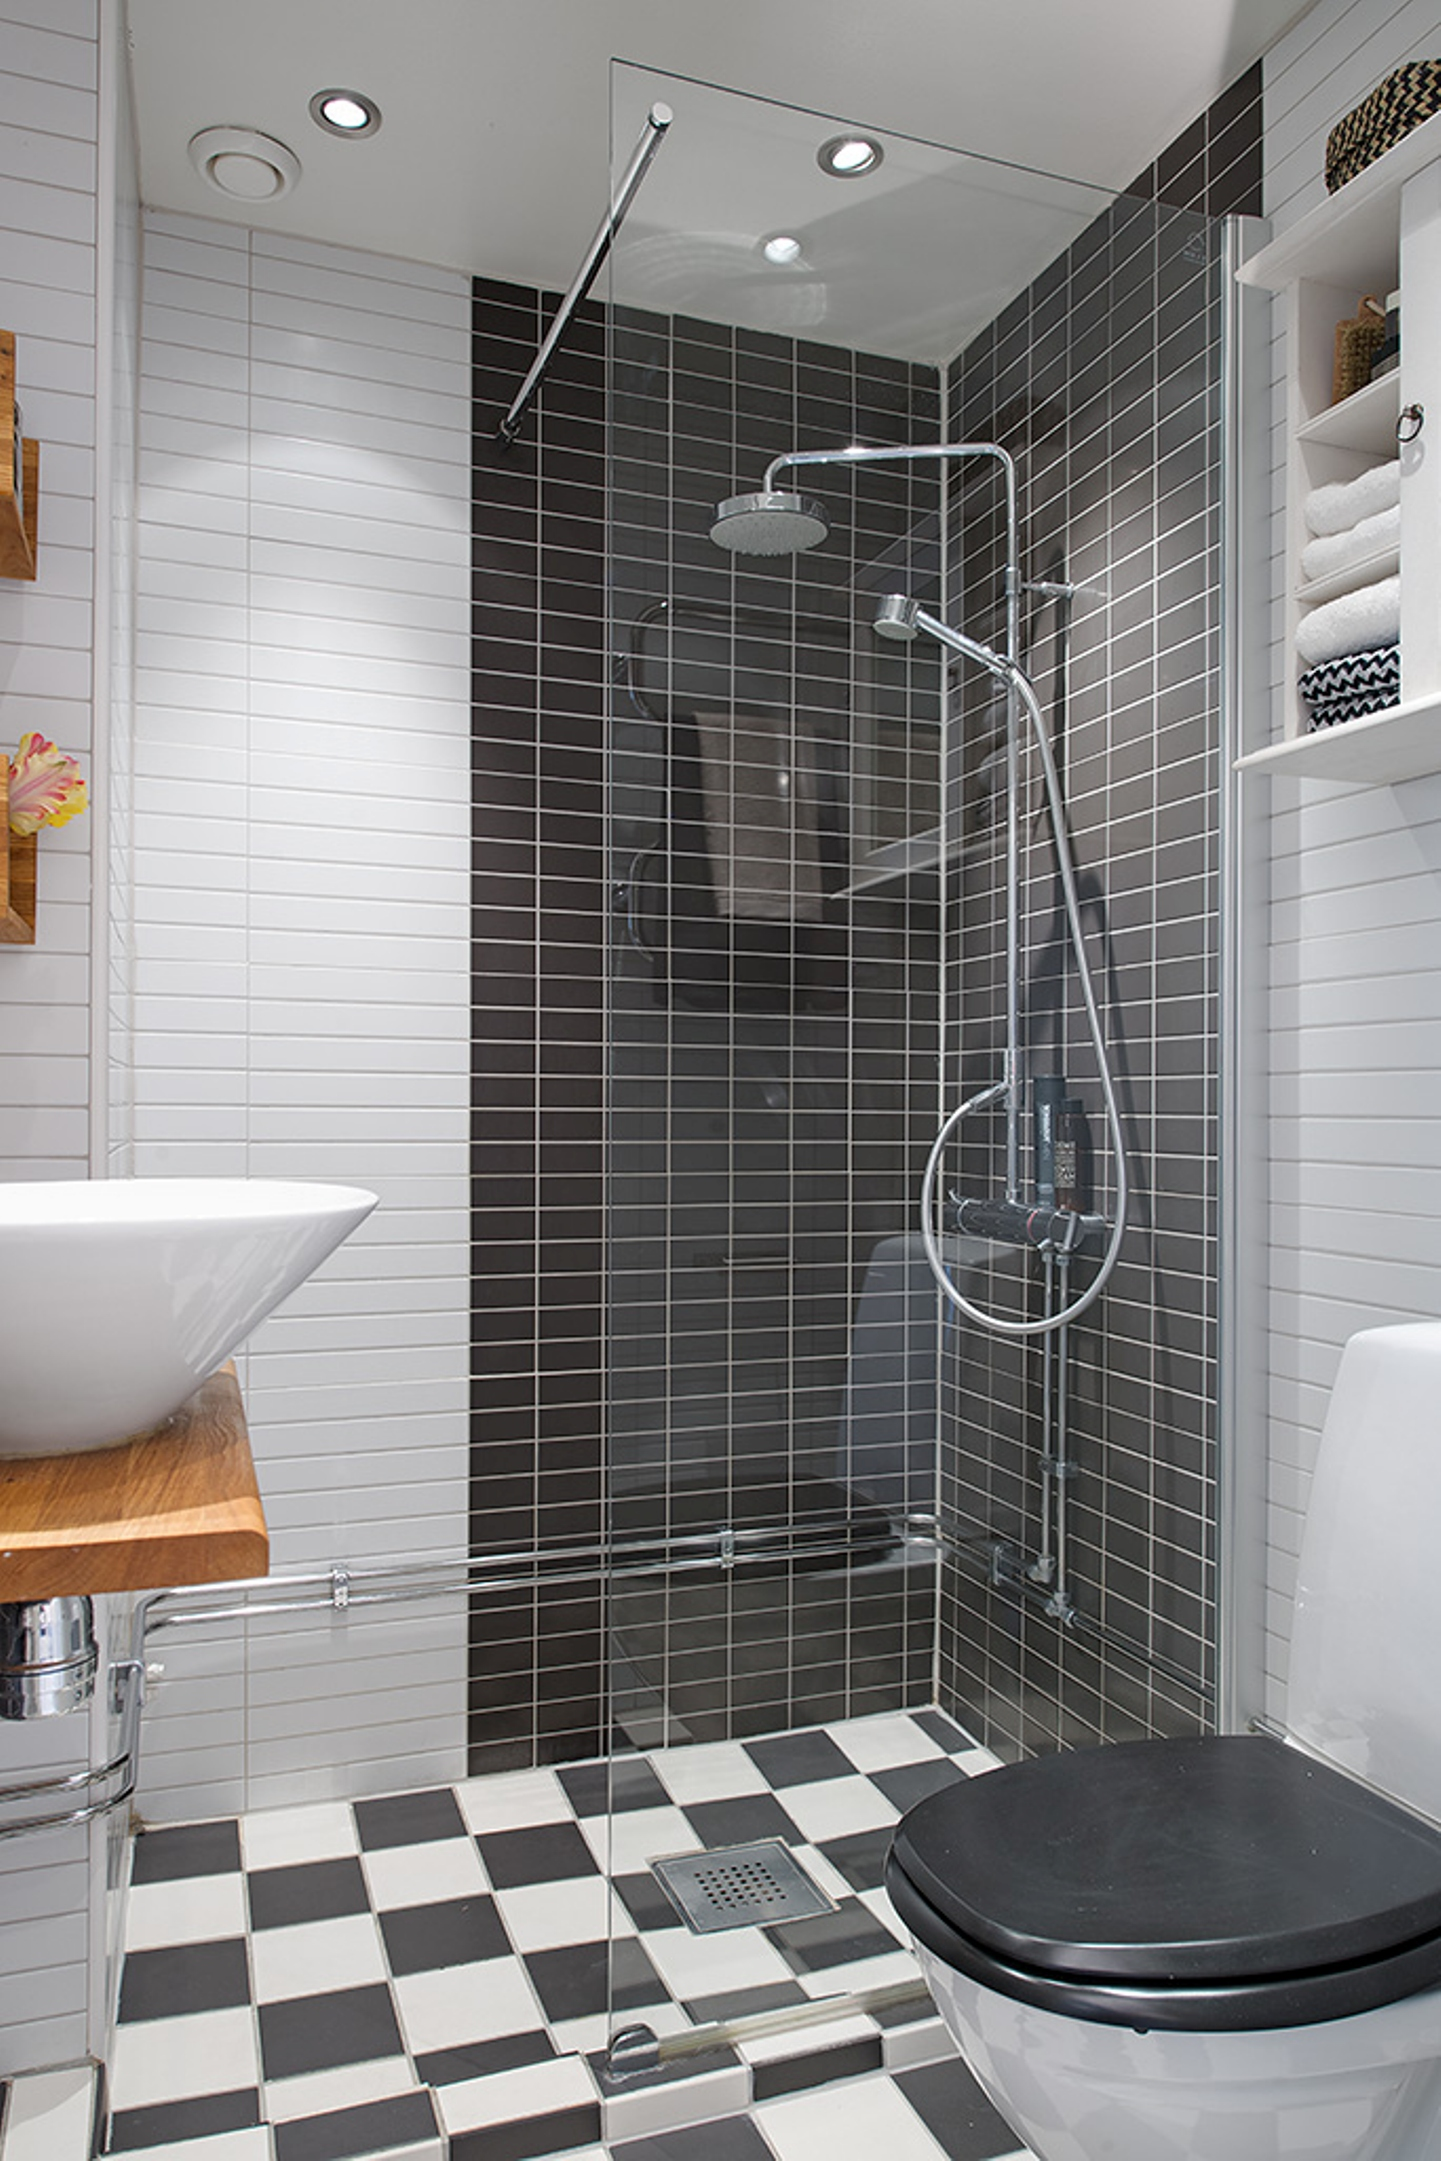 small-bathroom-ideas-modern-style-with-checkered-floor-and-subway-tile-shower-walls